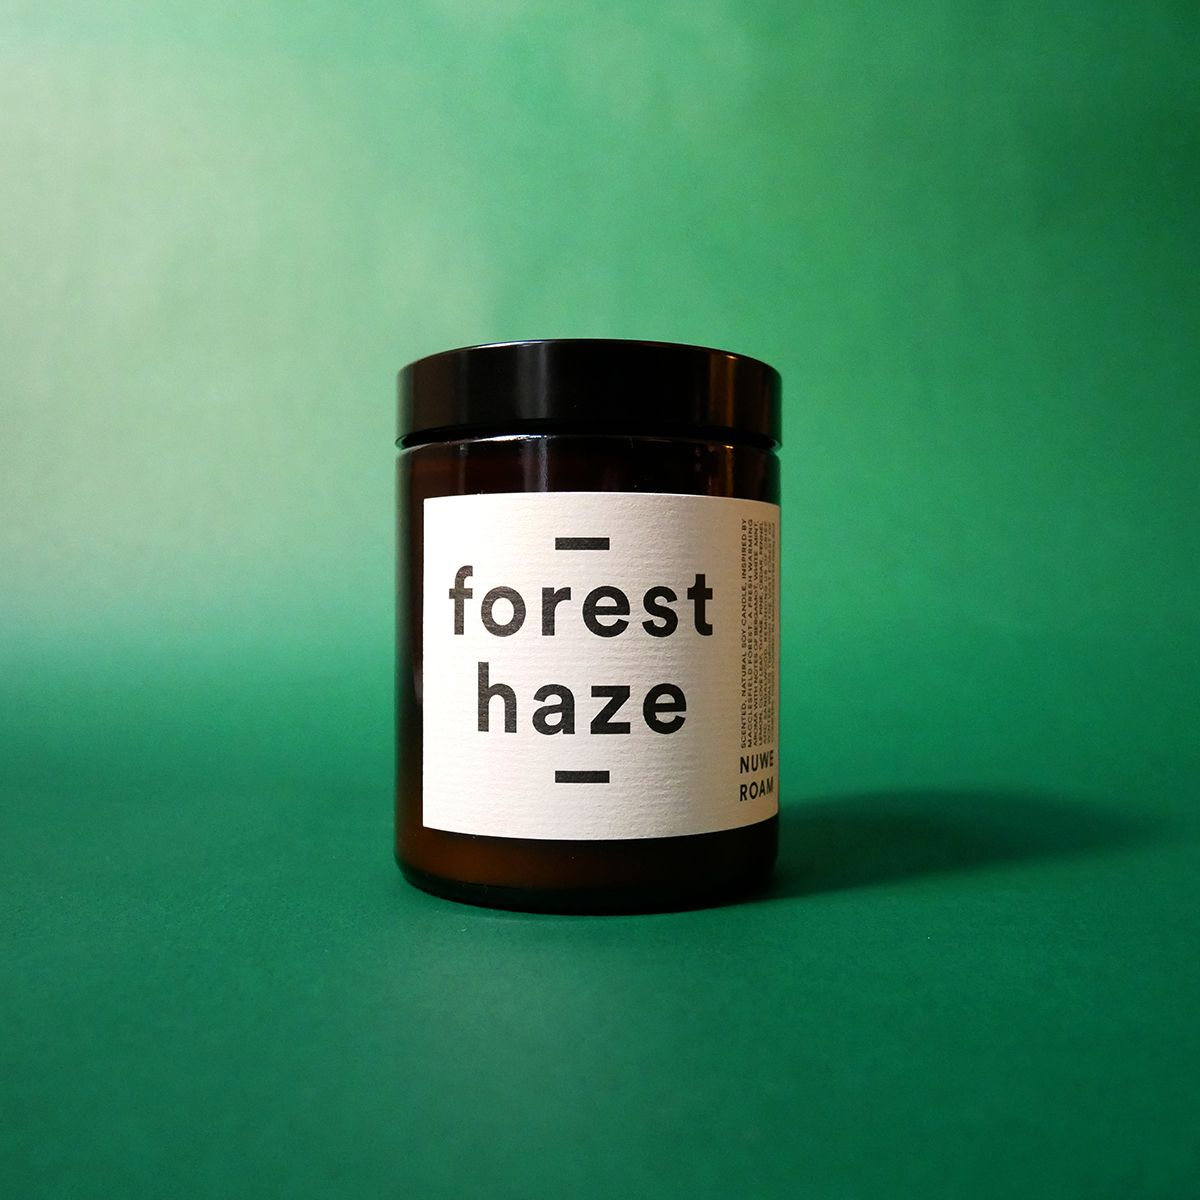 'FOREST HAZE' PINE & BERGAMOT SCENTED CANDLE